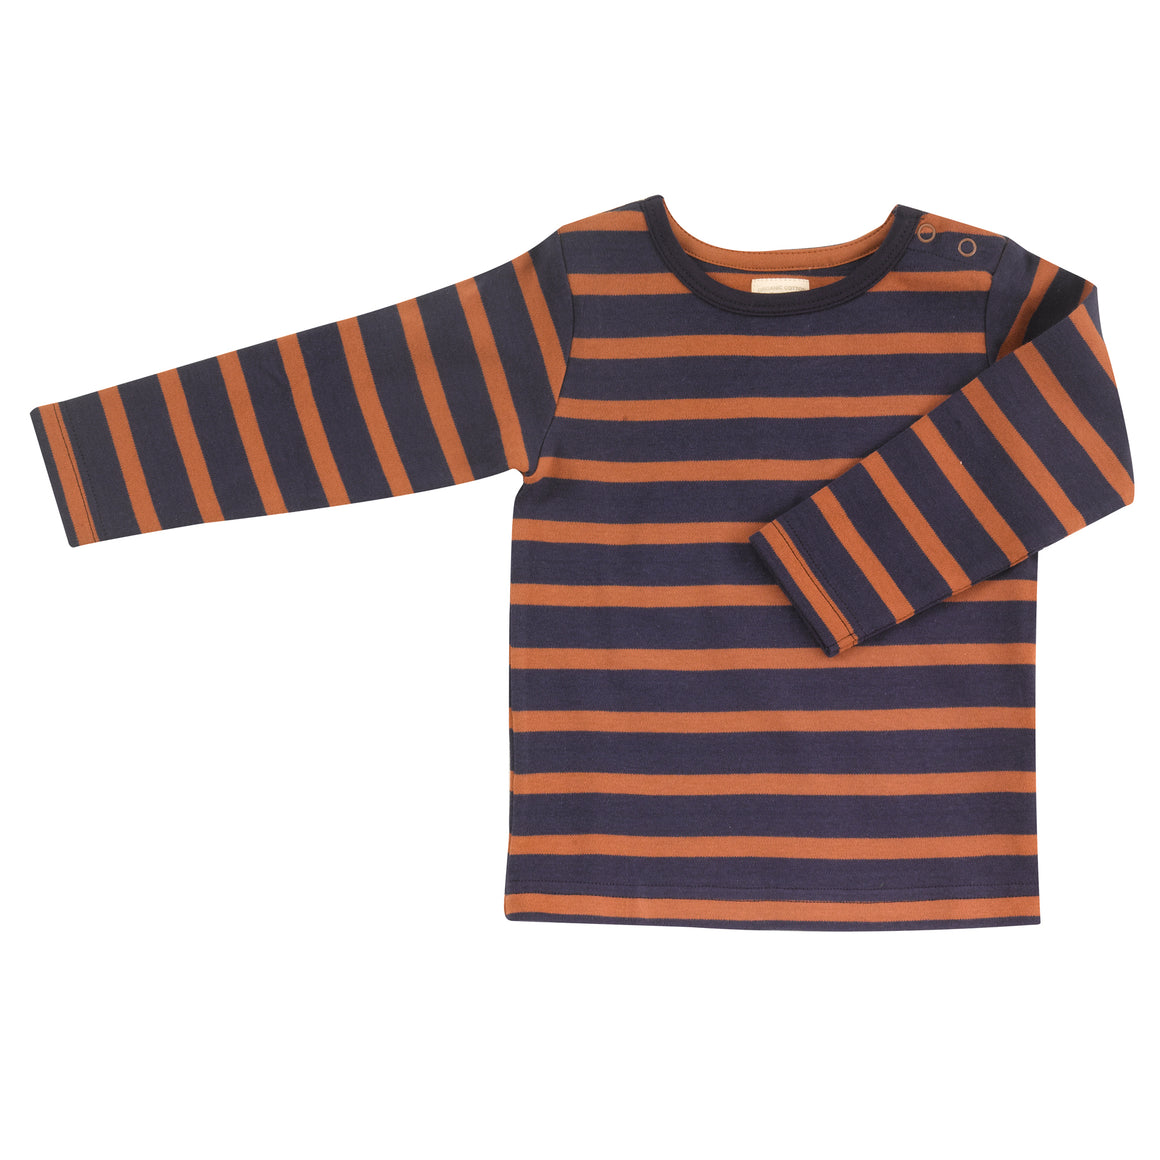 Top in navy & rust breton stripe